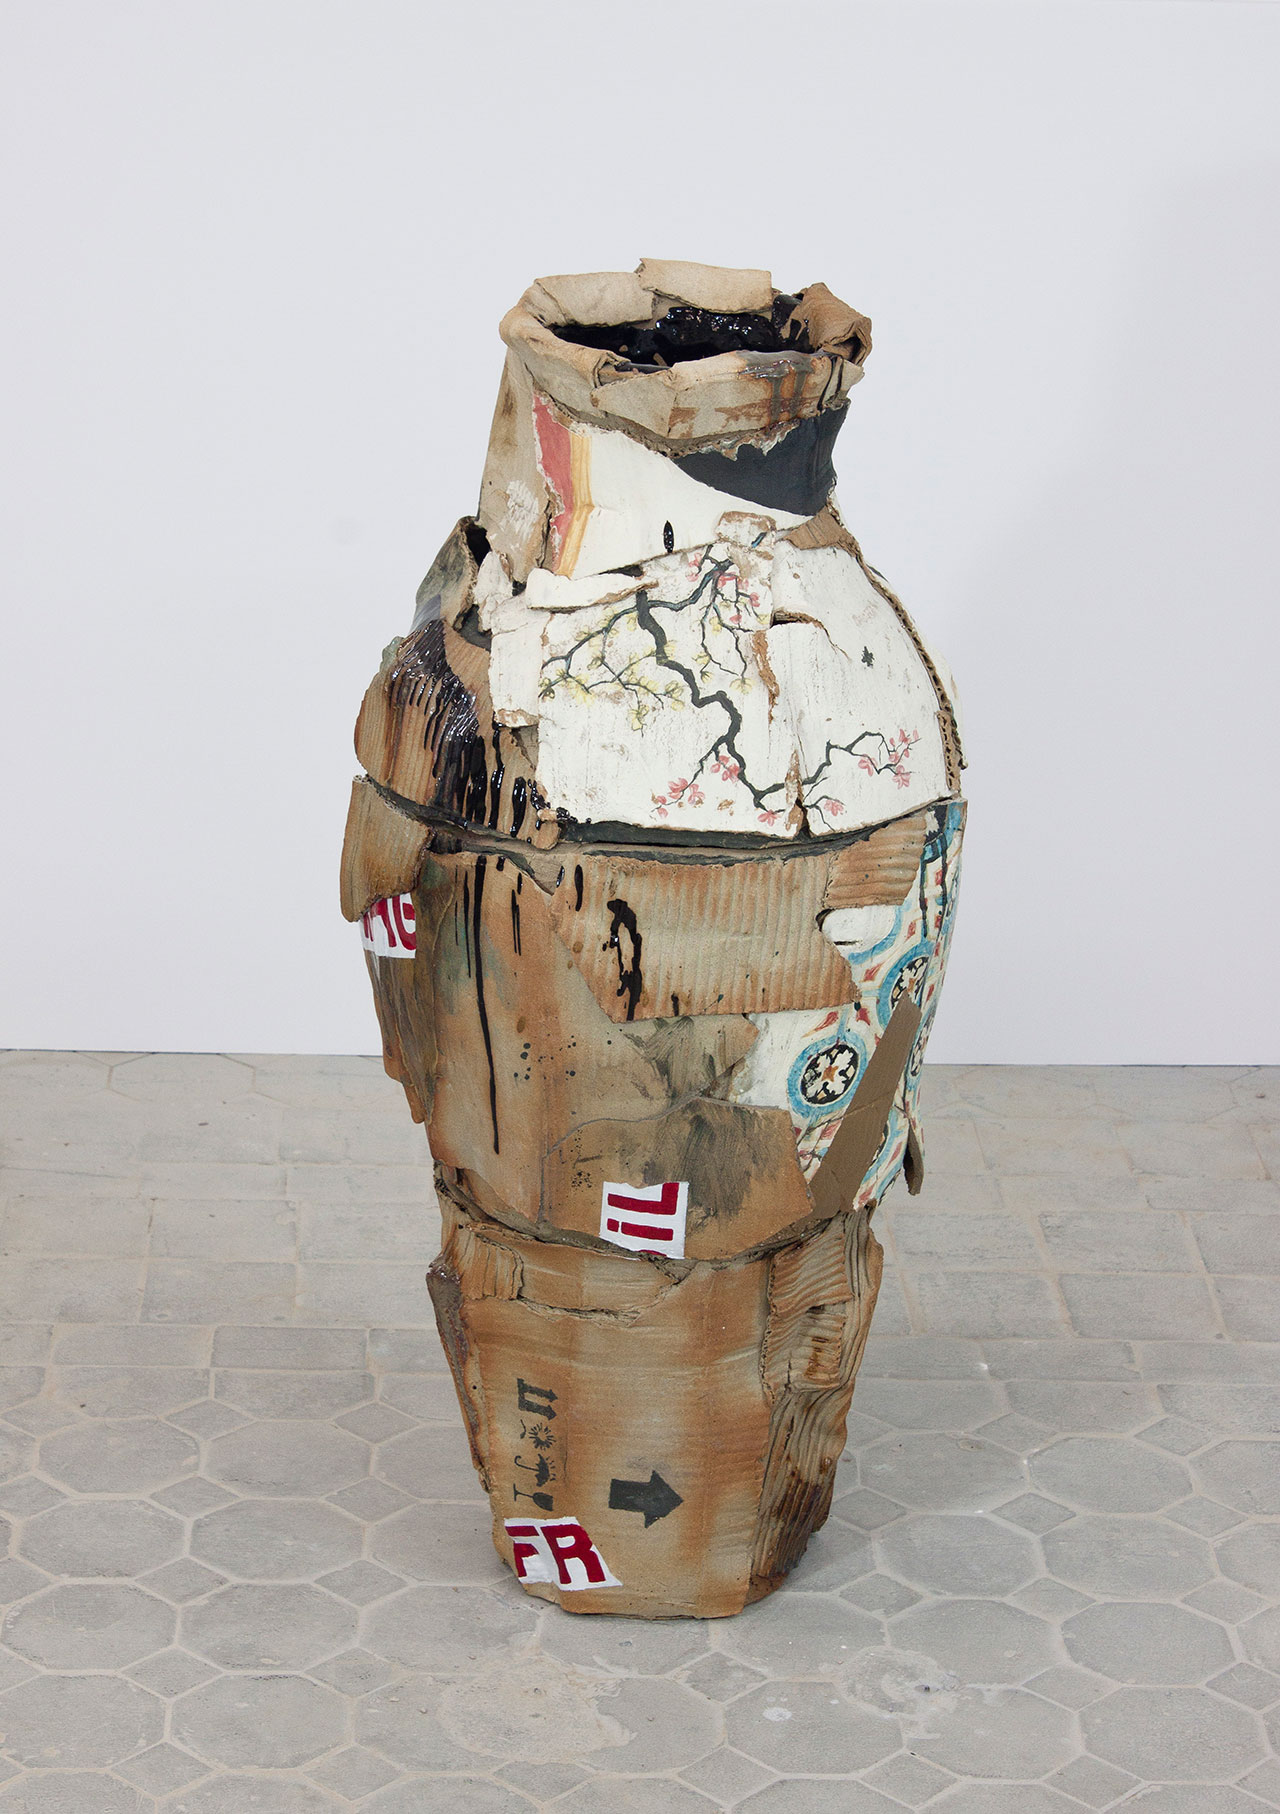 Rodrigo Torres, China in a Box Dynasty, 2016. 82 × 38 × 38cm. Laca paint on enamelled ceramic. Photo by Rodrigo Torres. Courtesy A Gentil Carioca.